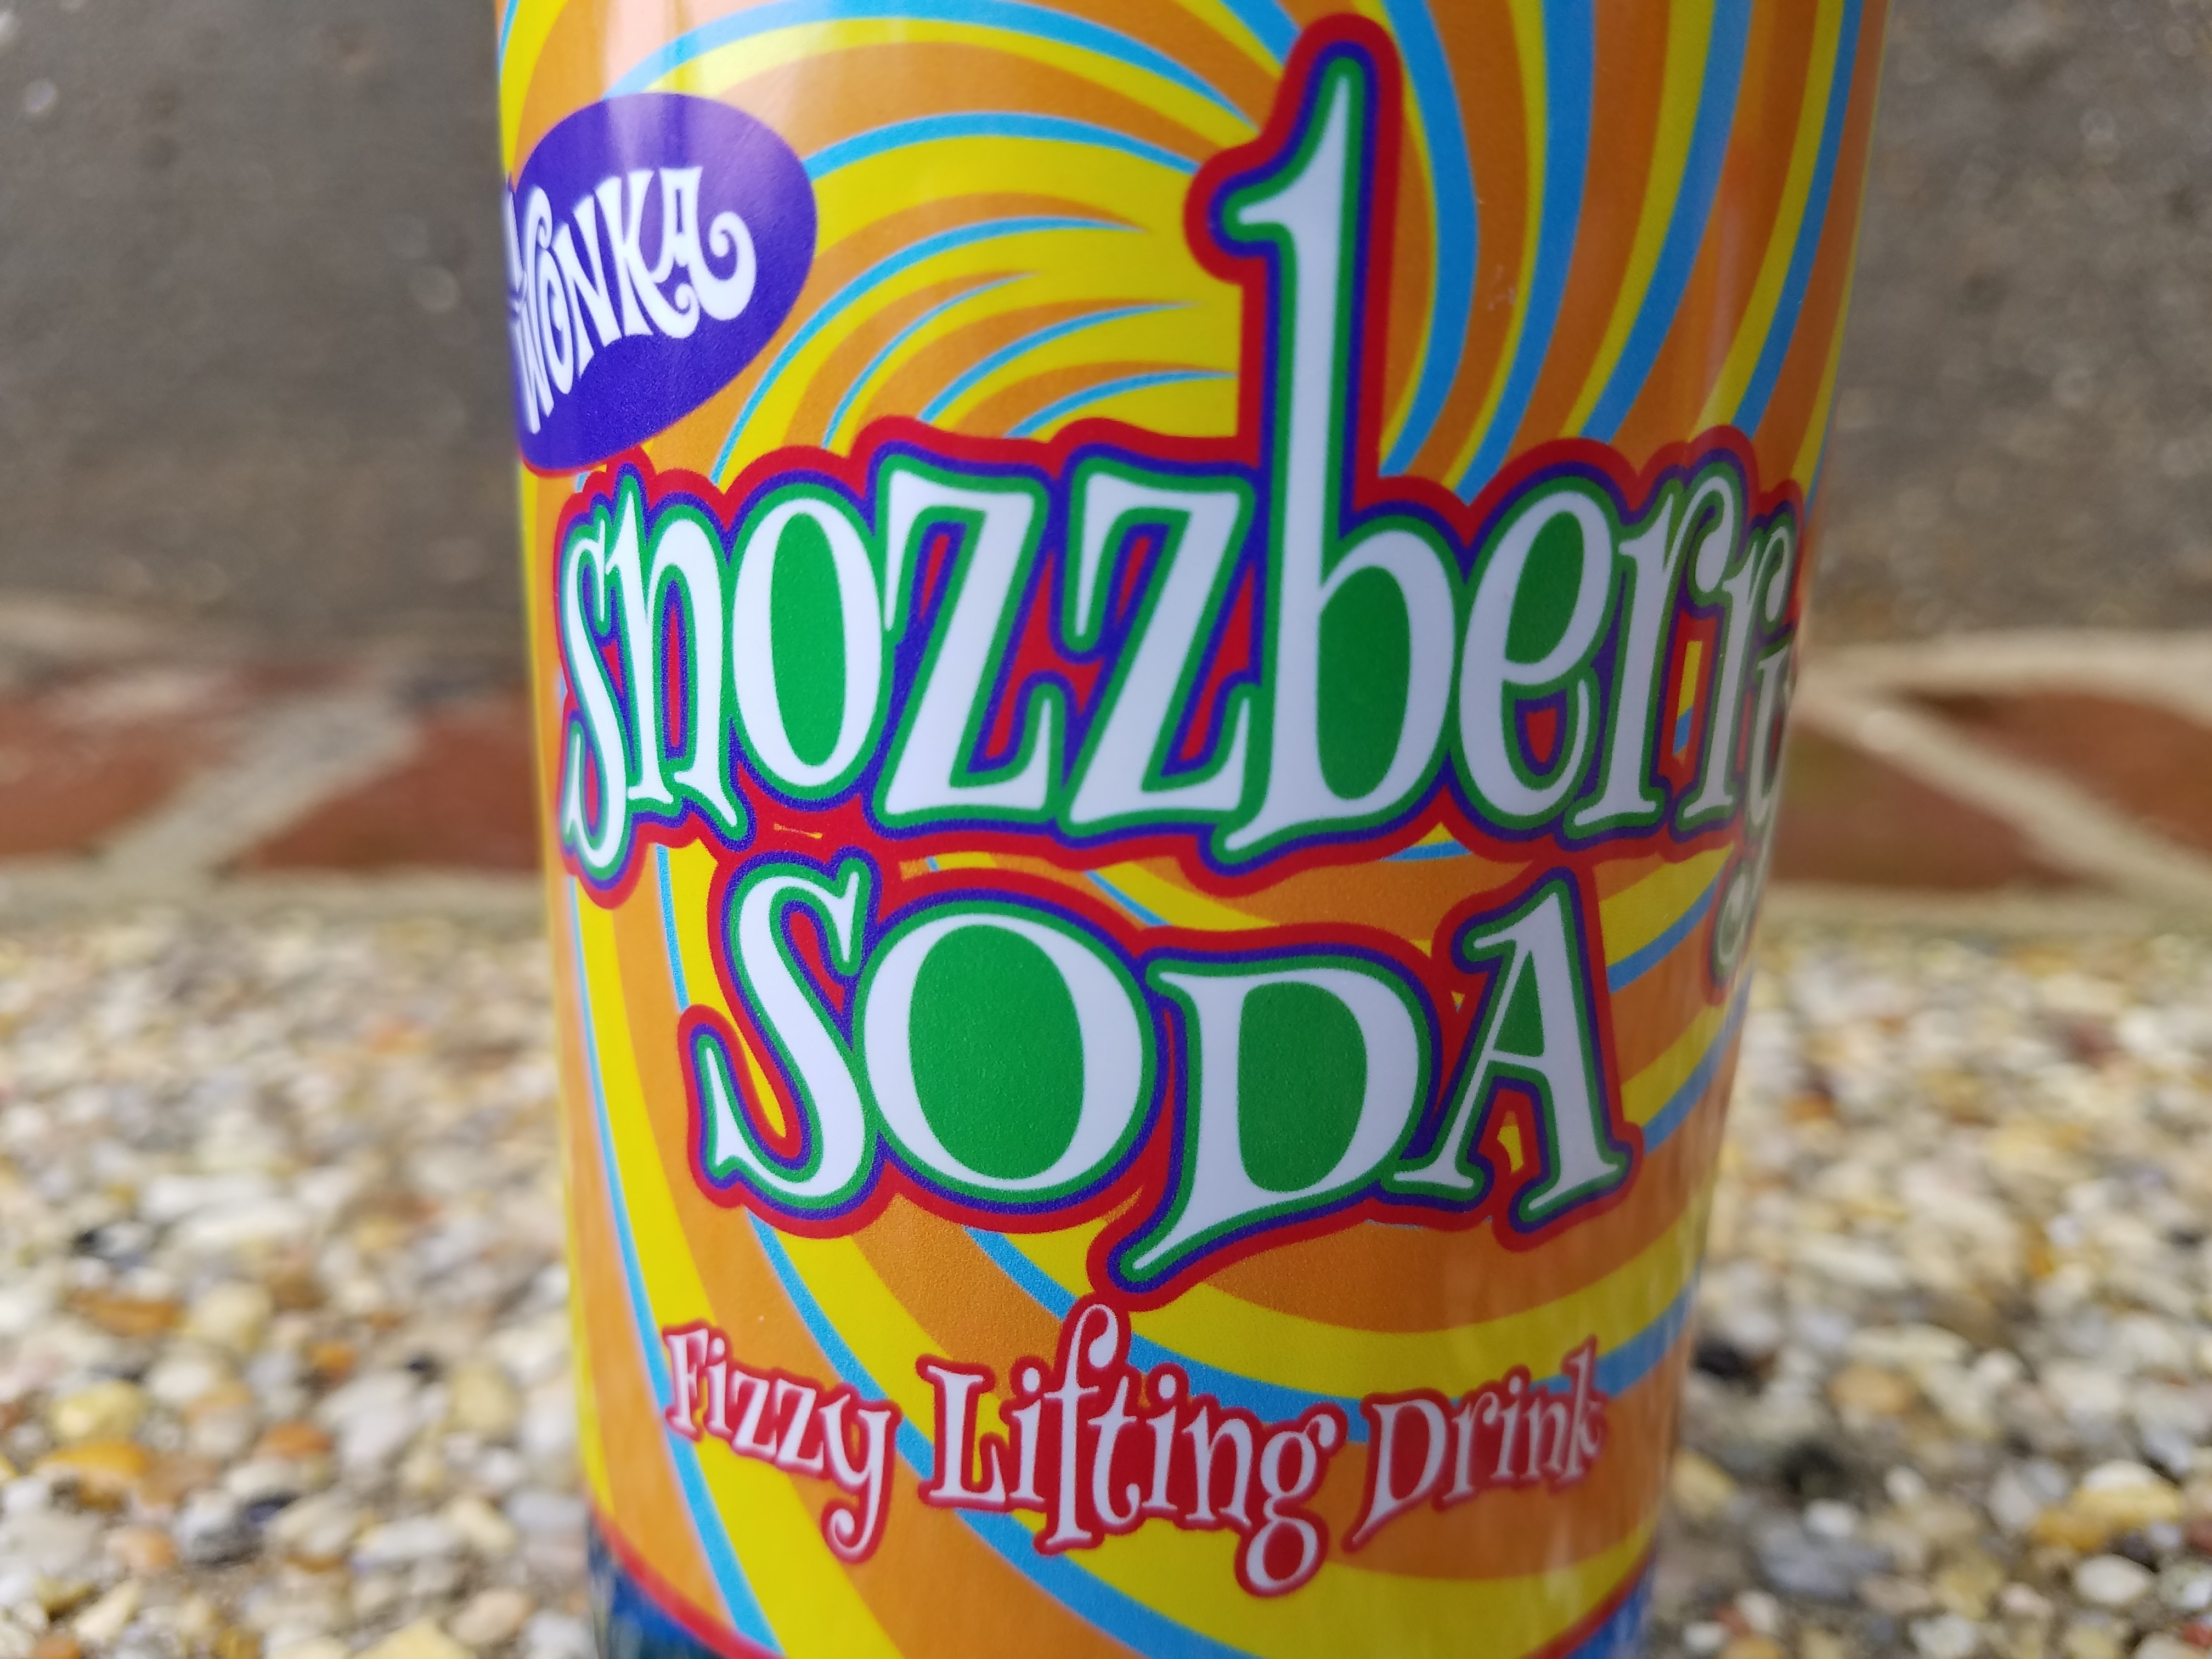 Willy wonka lifting soda clipart svg free stock 2 x Willy Wonka Fizzy Lifting Drink Bottles | Snozzberry Soda svg free stock